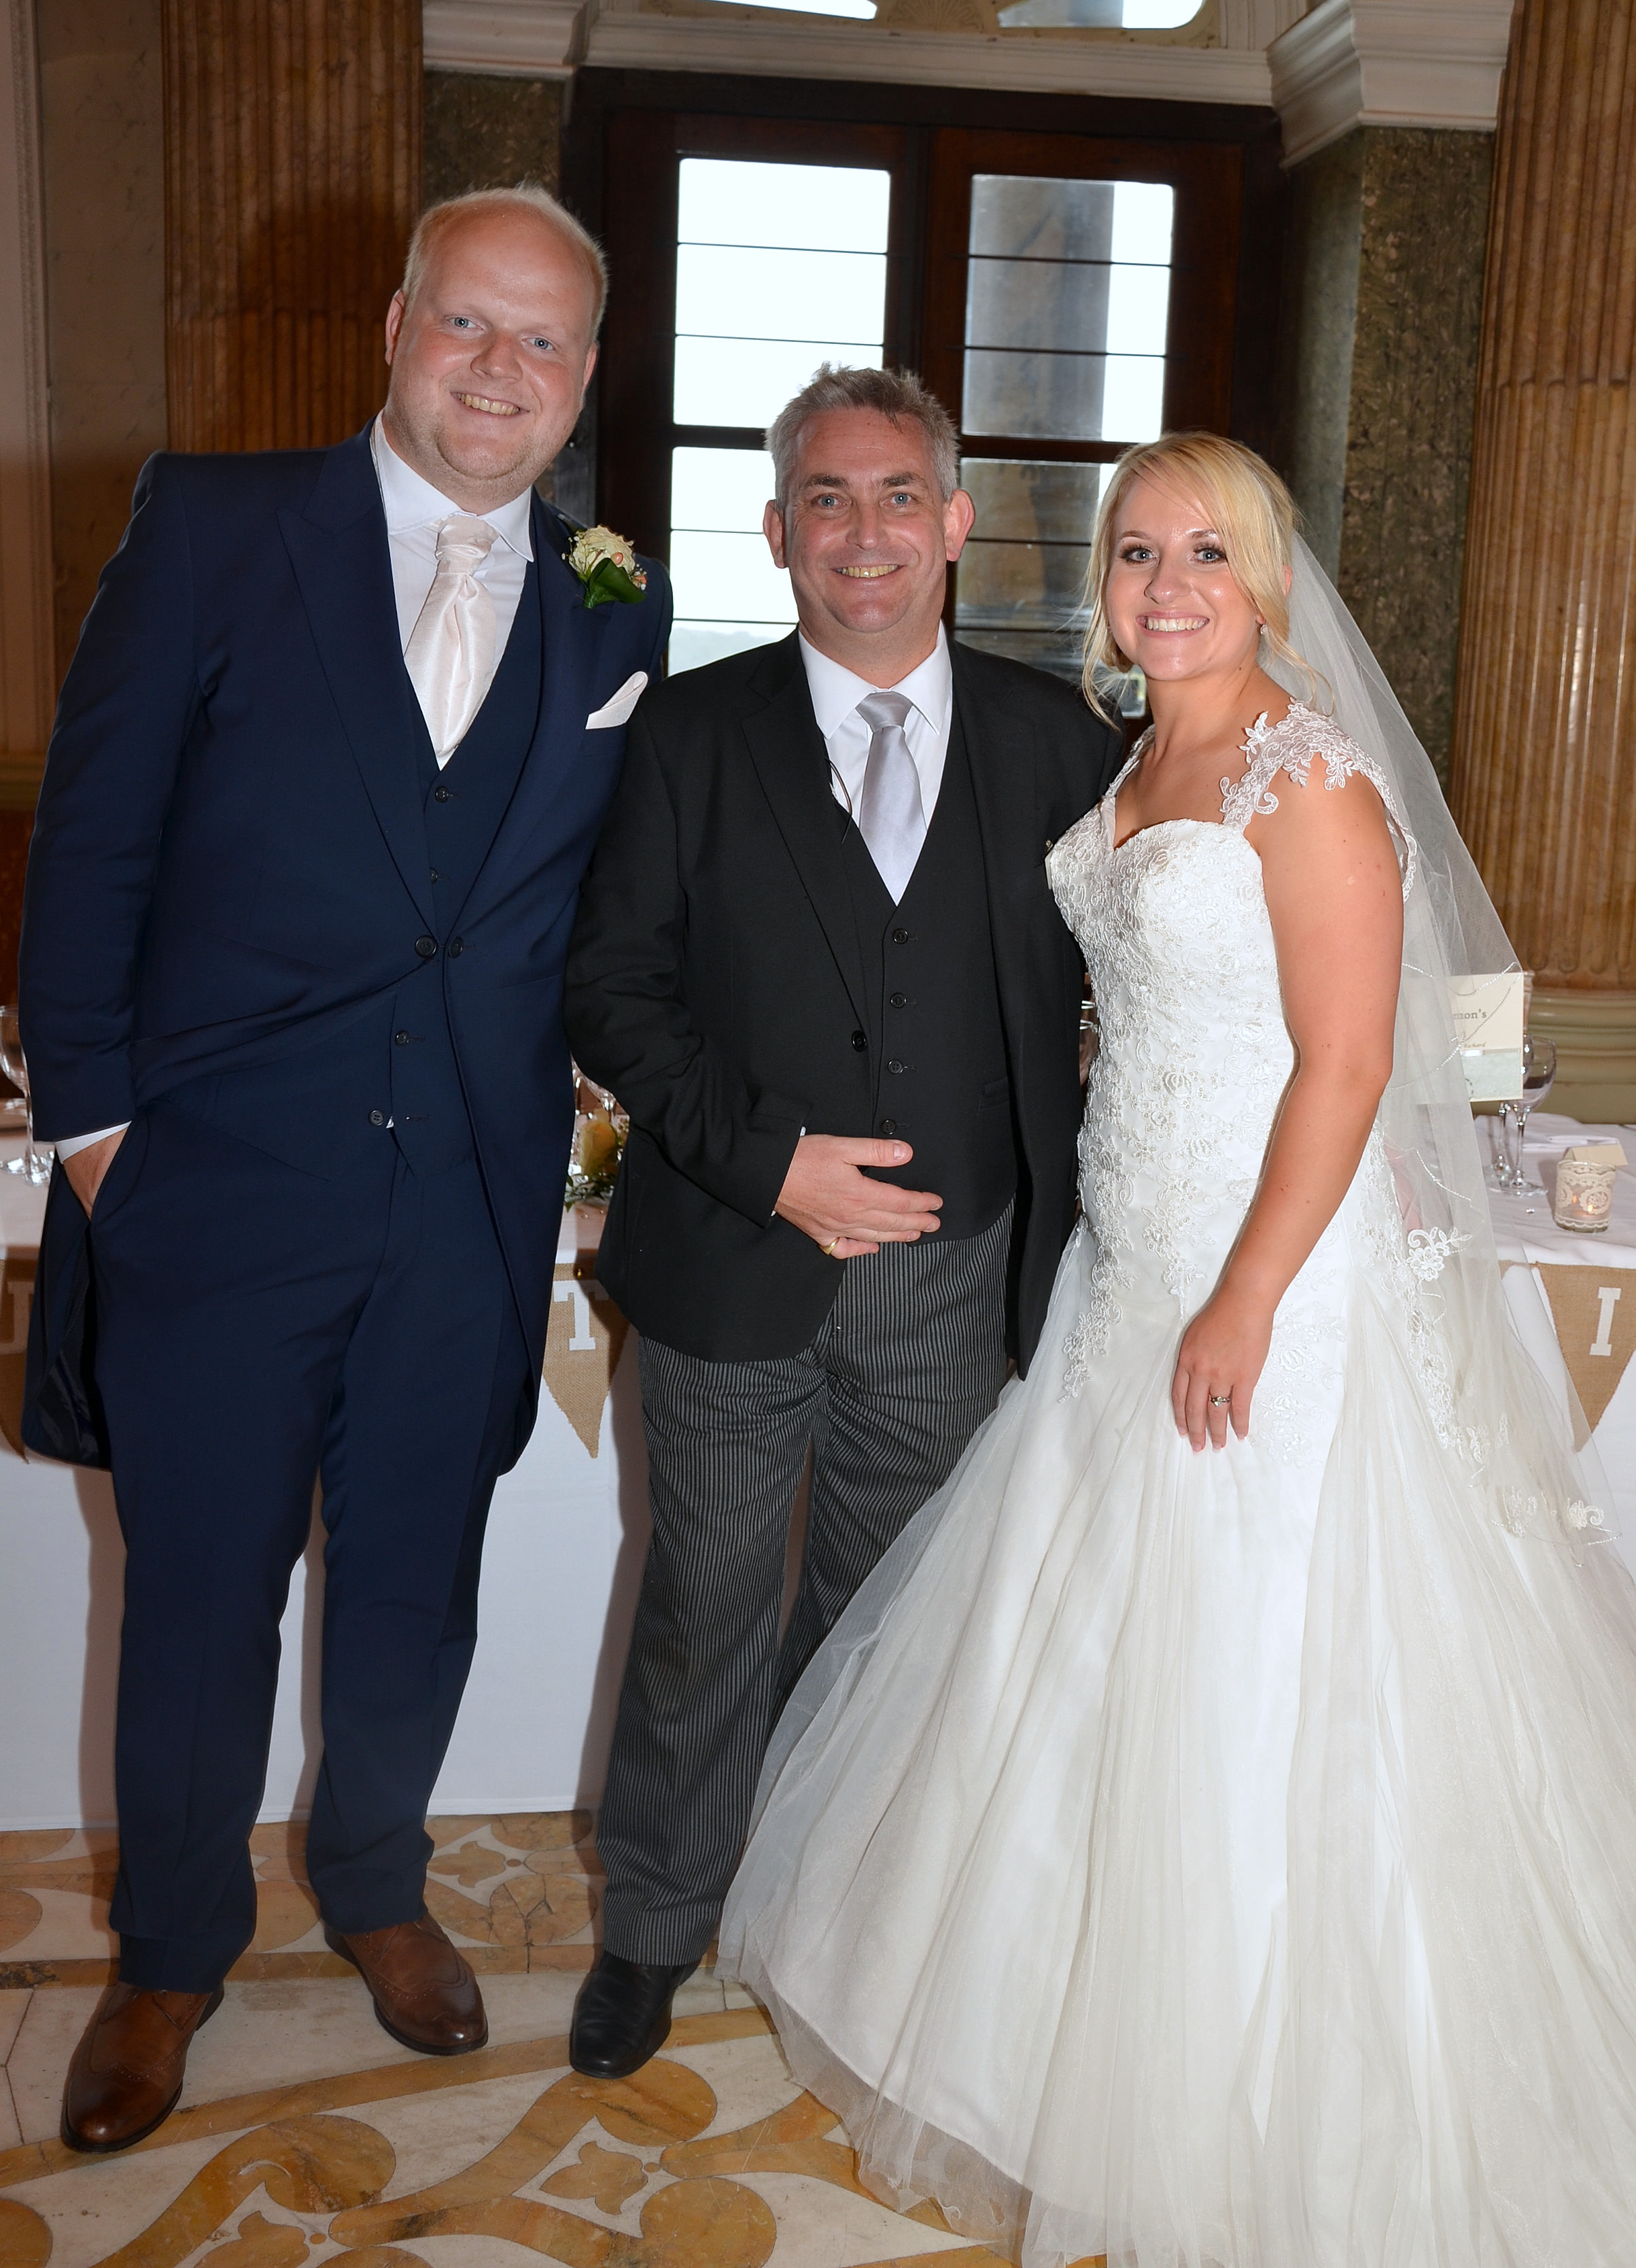 The happy couple with Dine's Head of Events, Craig Squelch